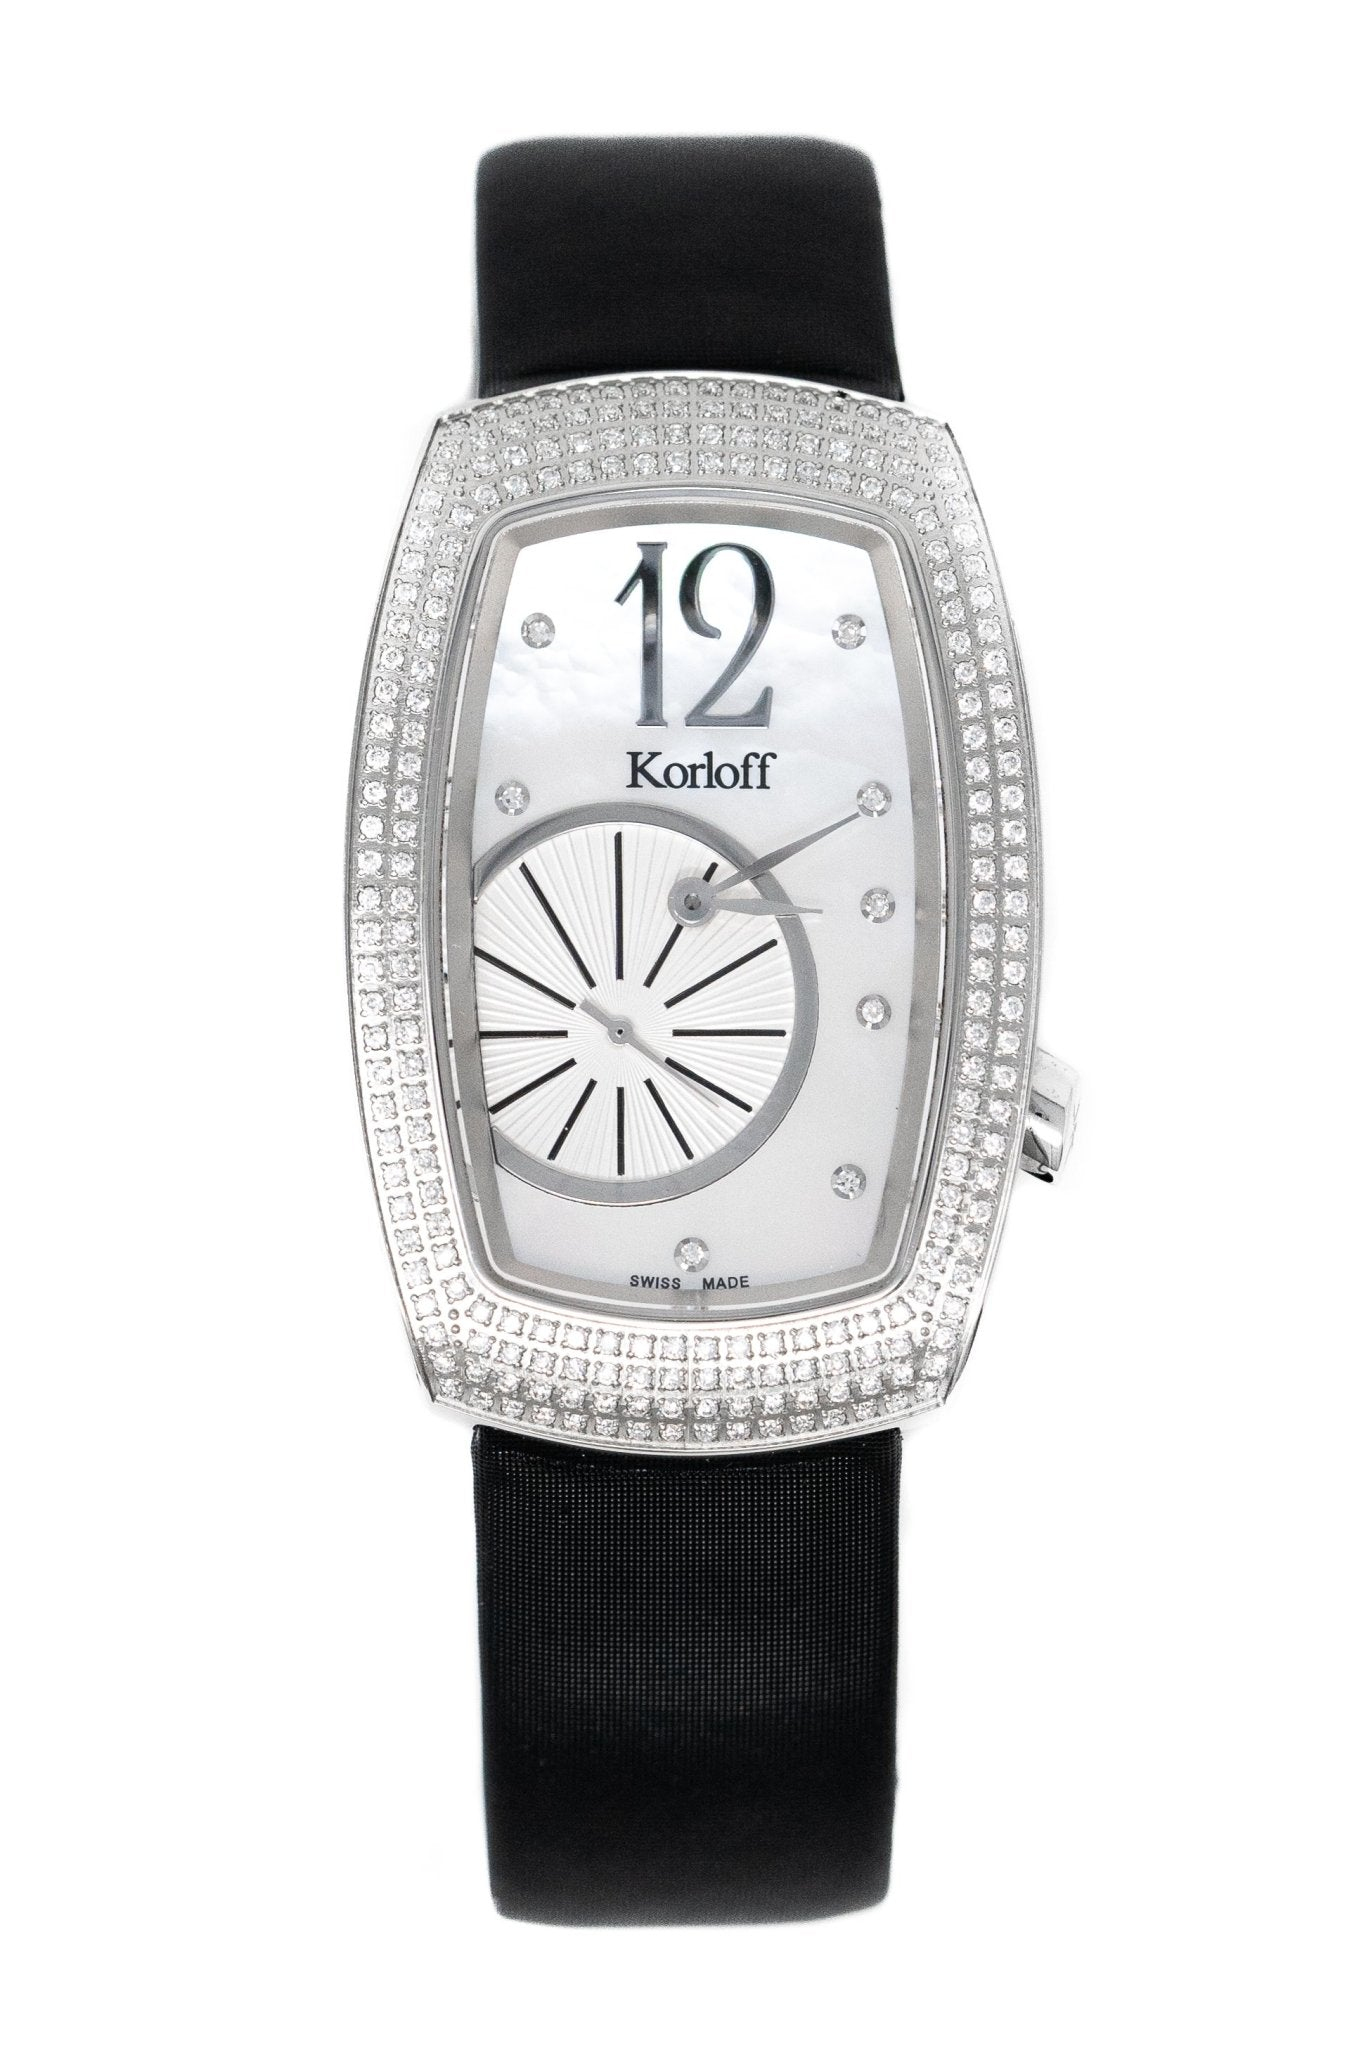 Korloff Tonneau Ronde Diamond Limited Edition - Watches & Crystals